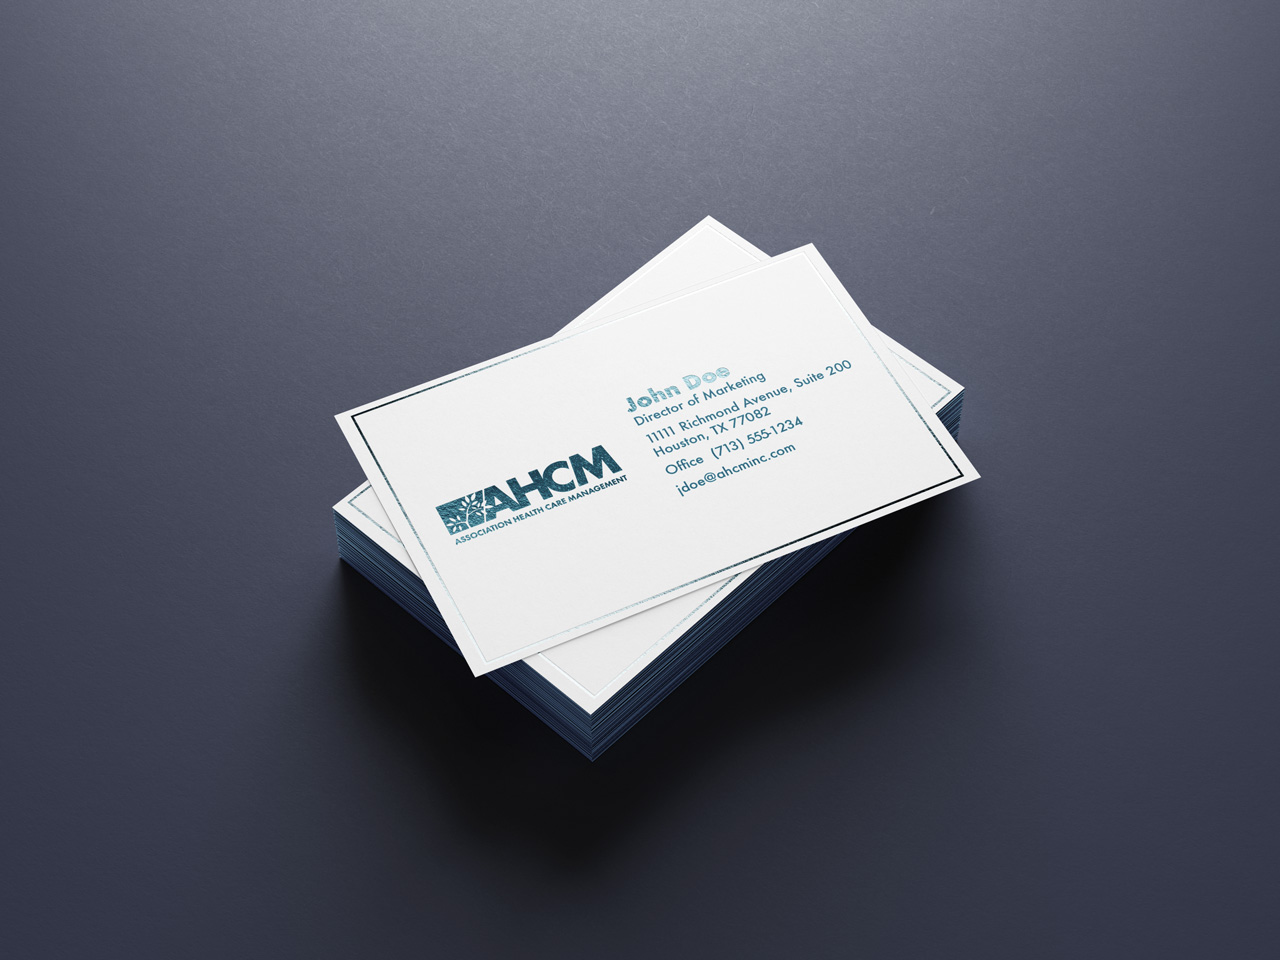 project ahcm business card 1